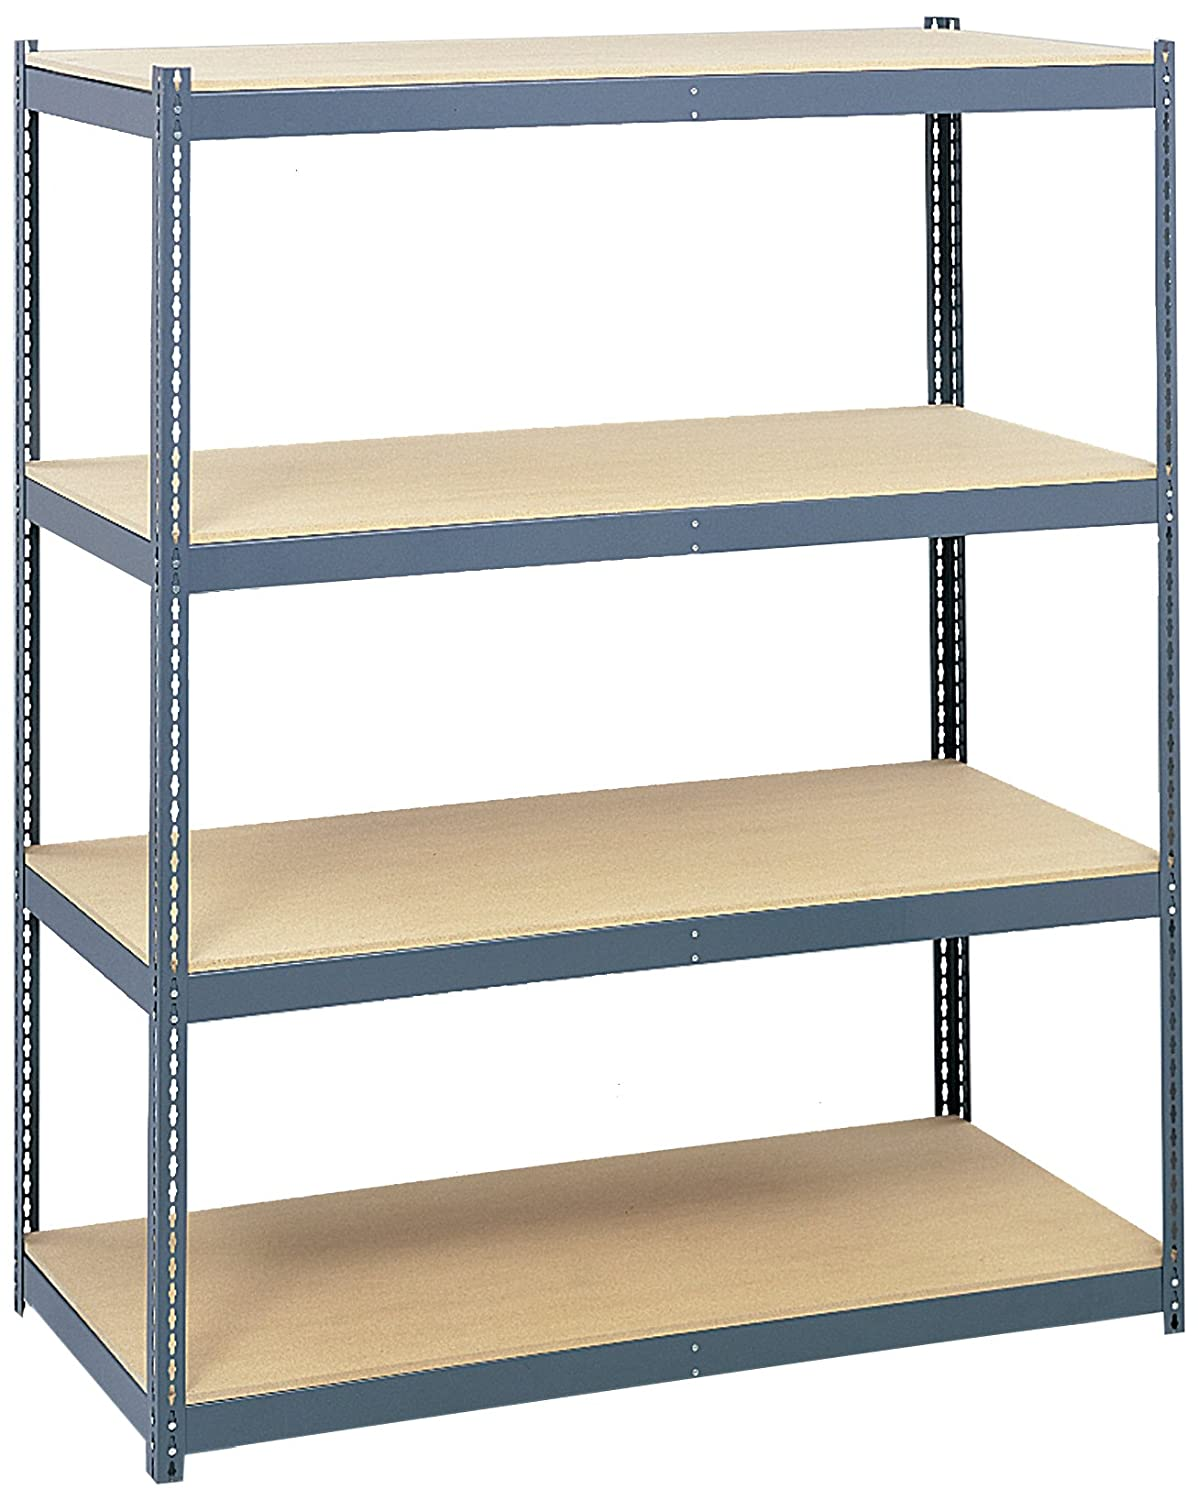 """Safco Products 5260 Archival Shelving Steel Frame 84""""h For Use With  Archival Shelves 5261, Sold Separately, Gray"""